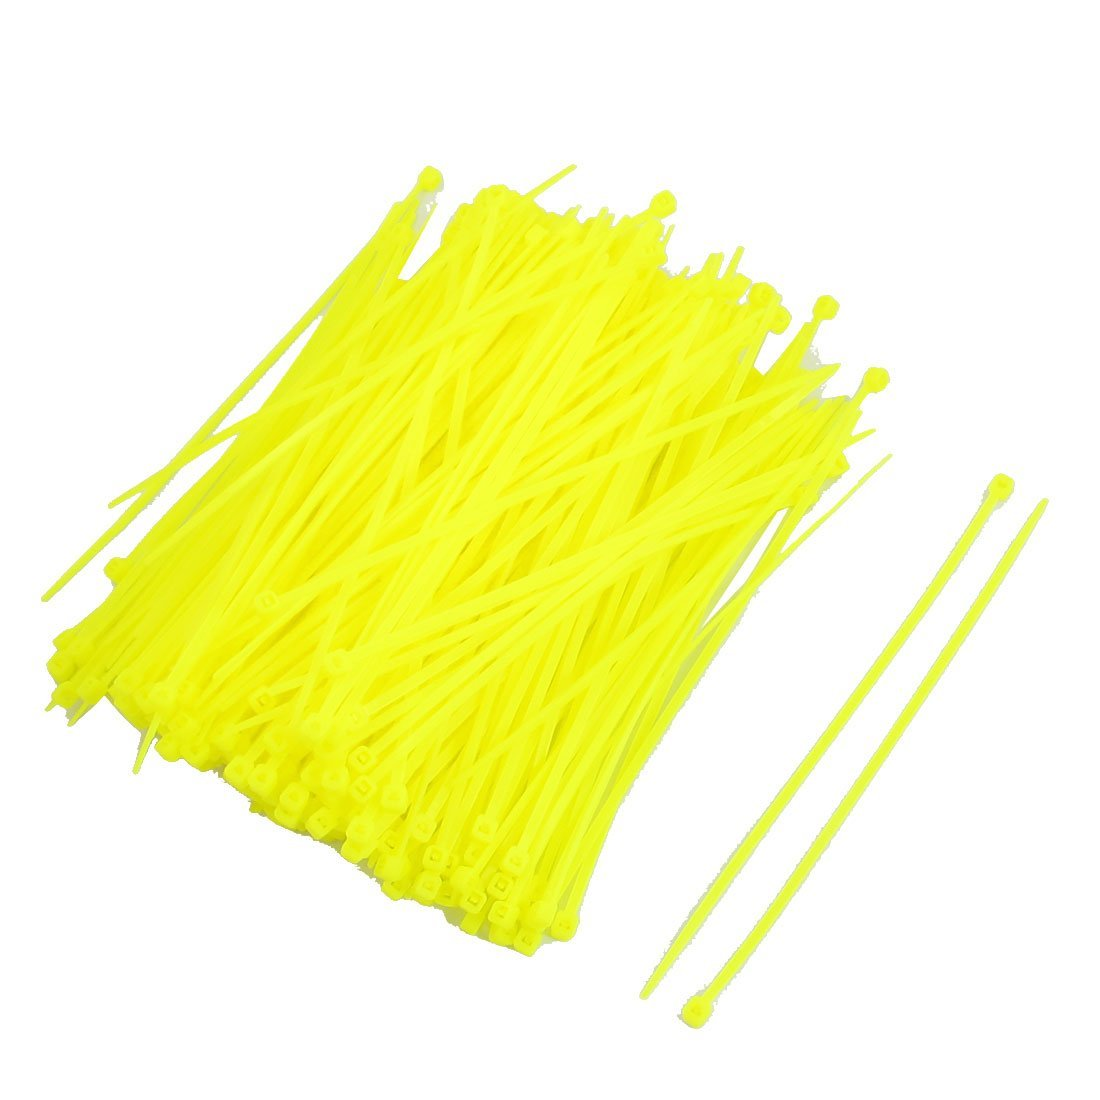 Uxcell Nylon Adjustable Locked Cable Zip Tie 2.5 x 150 mm Light Yellow 300 Piece